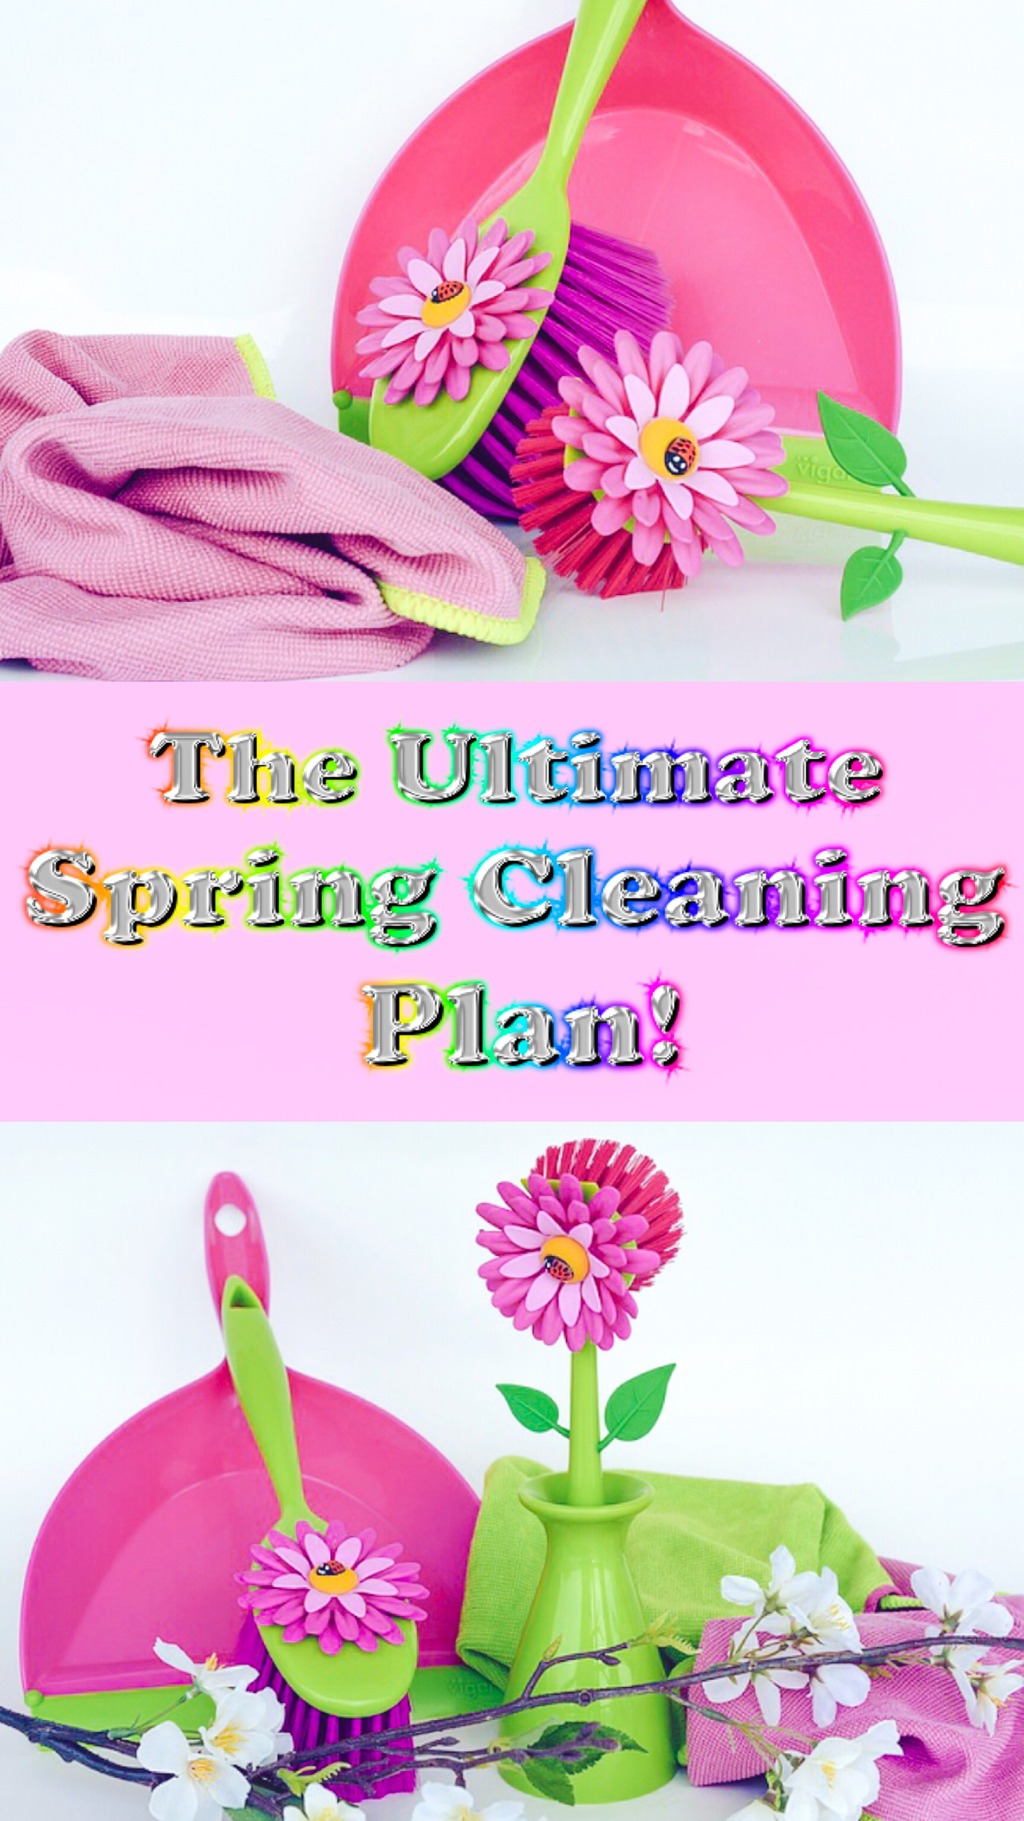 THE ULTIMATE SPRING CLEANING PLAN!